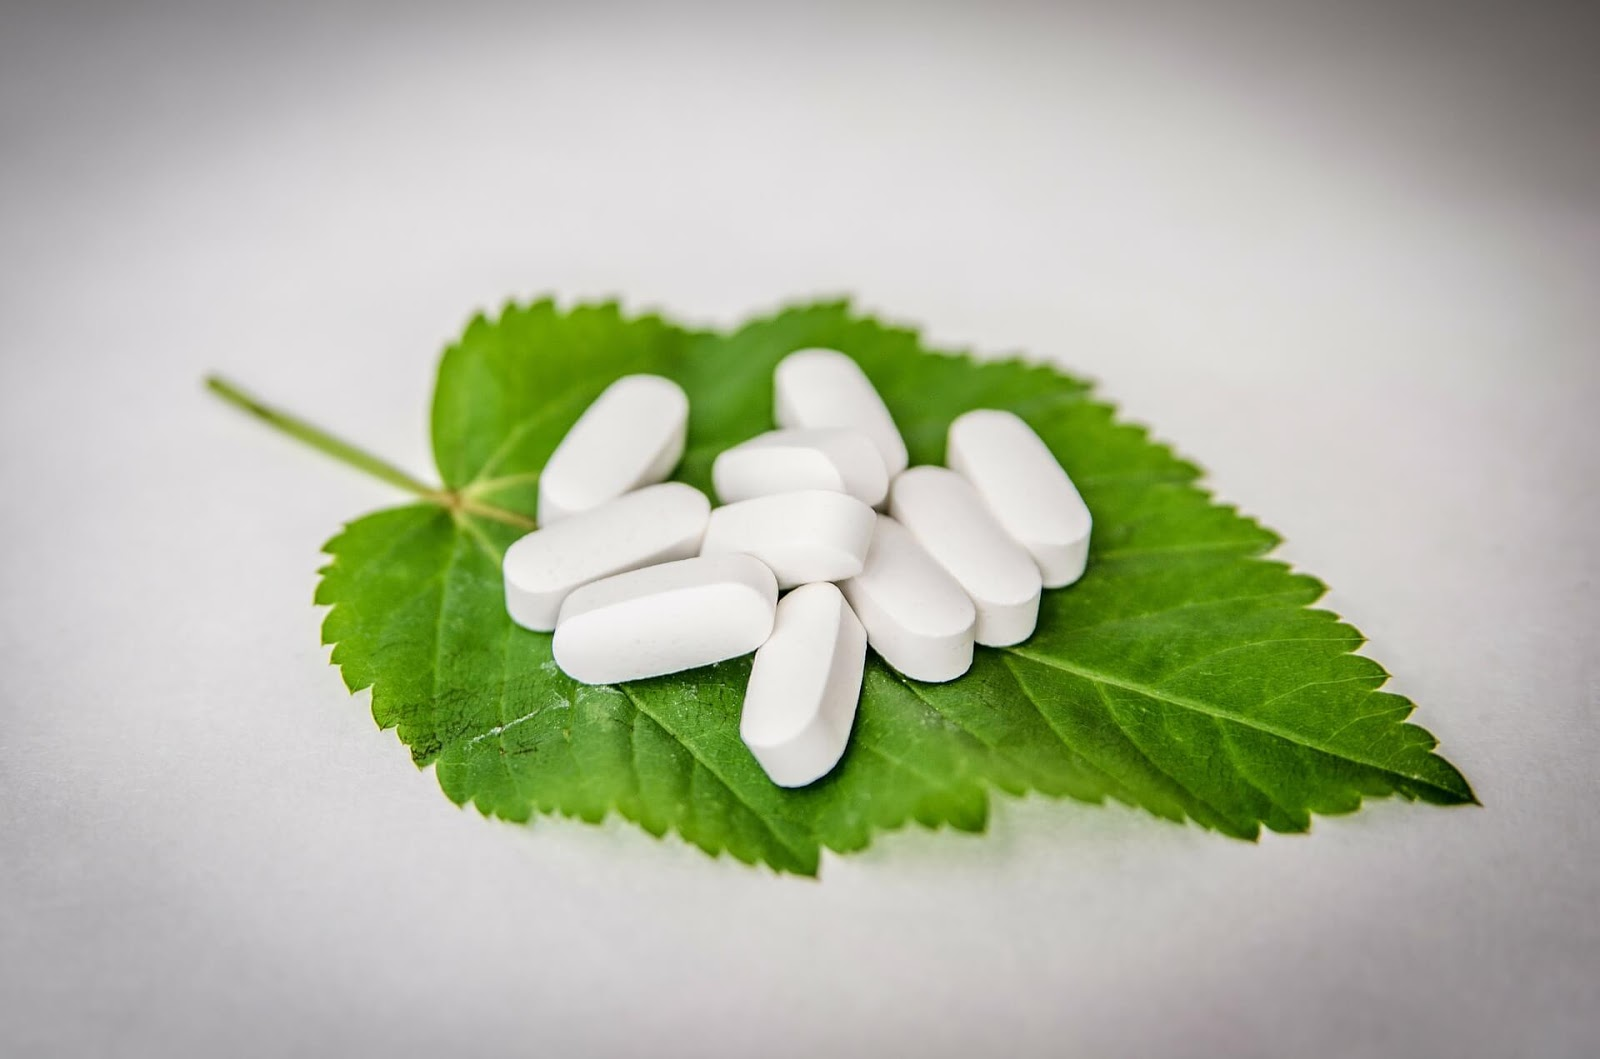 Pills on a leaf